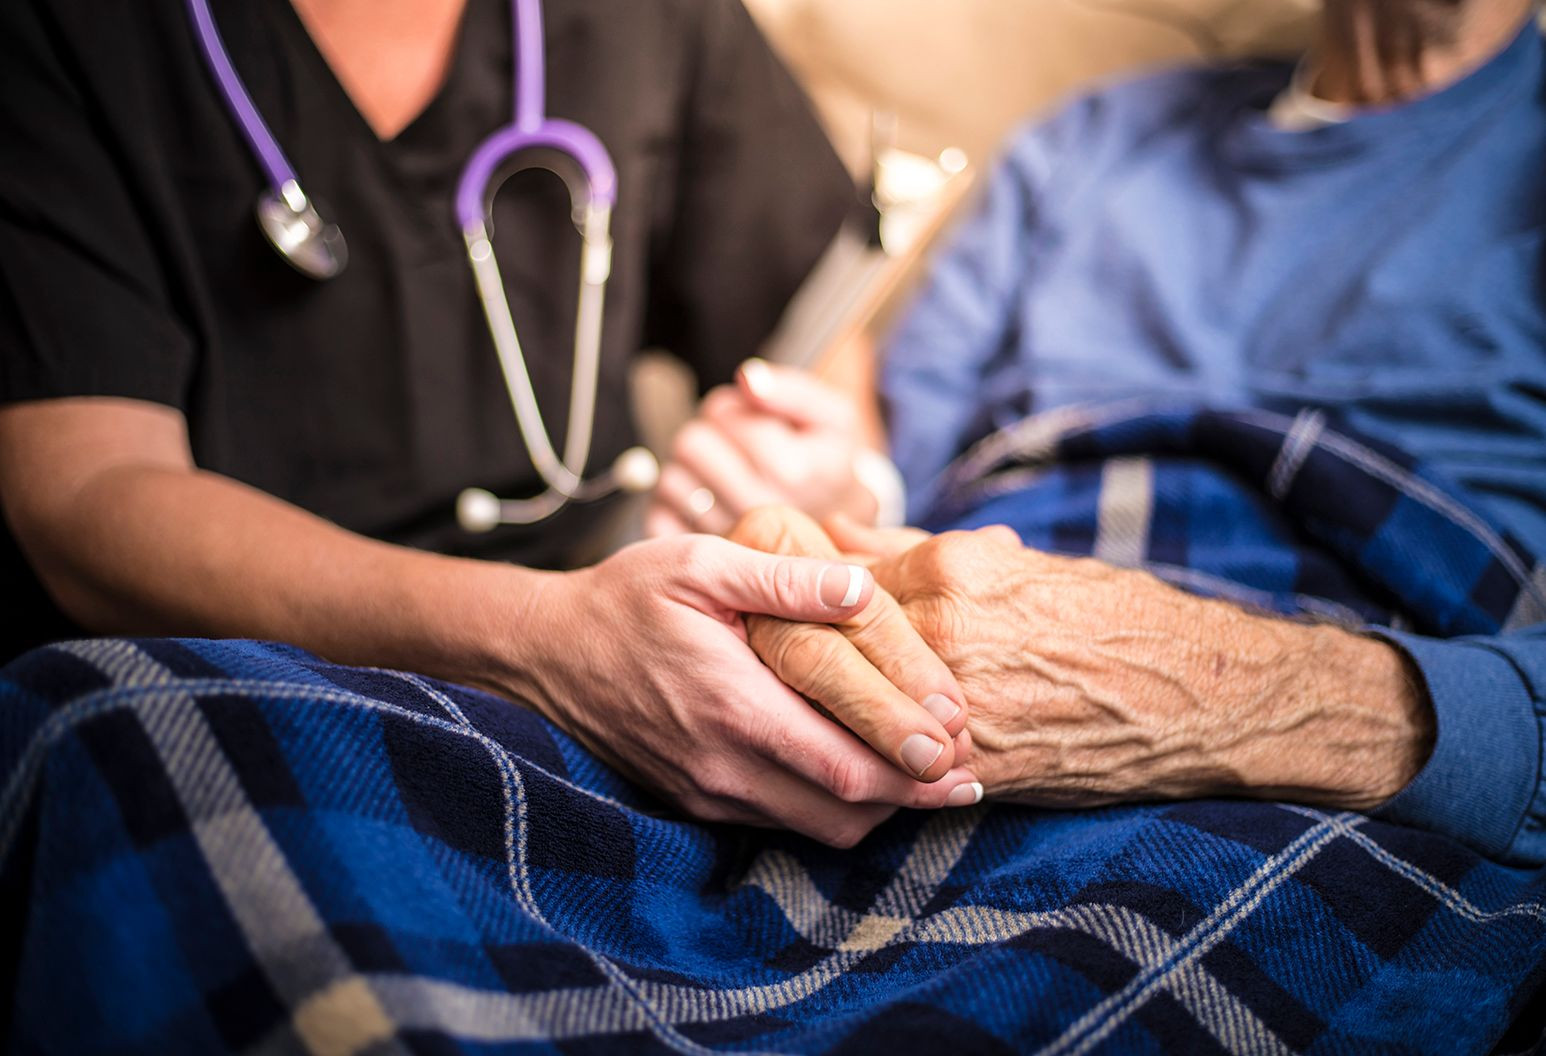 Hospice nurse is holding hand of an elderly male patient